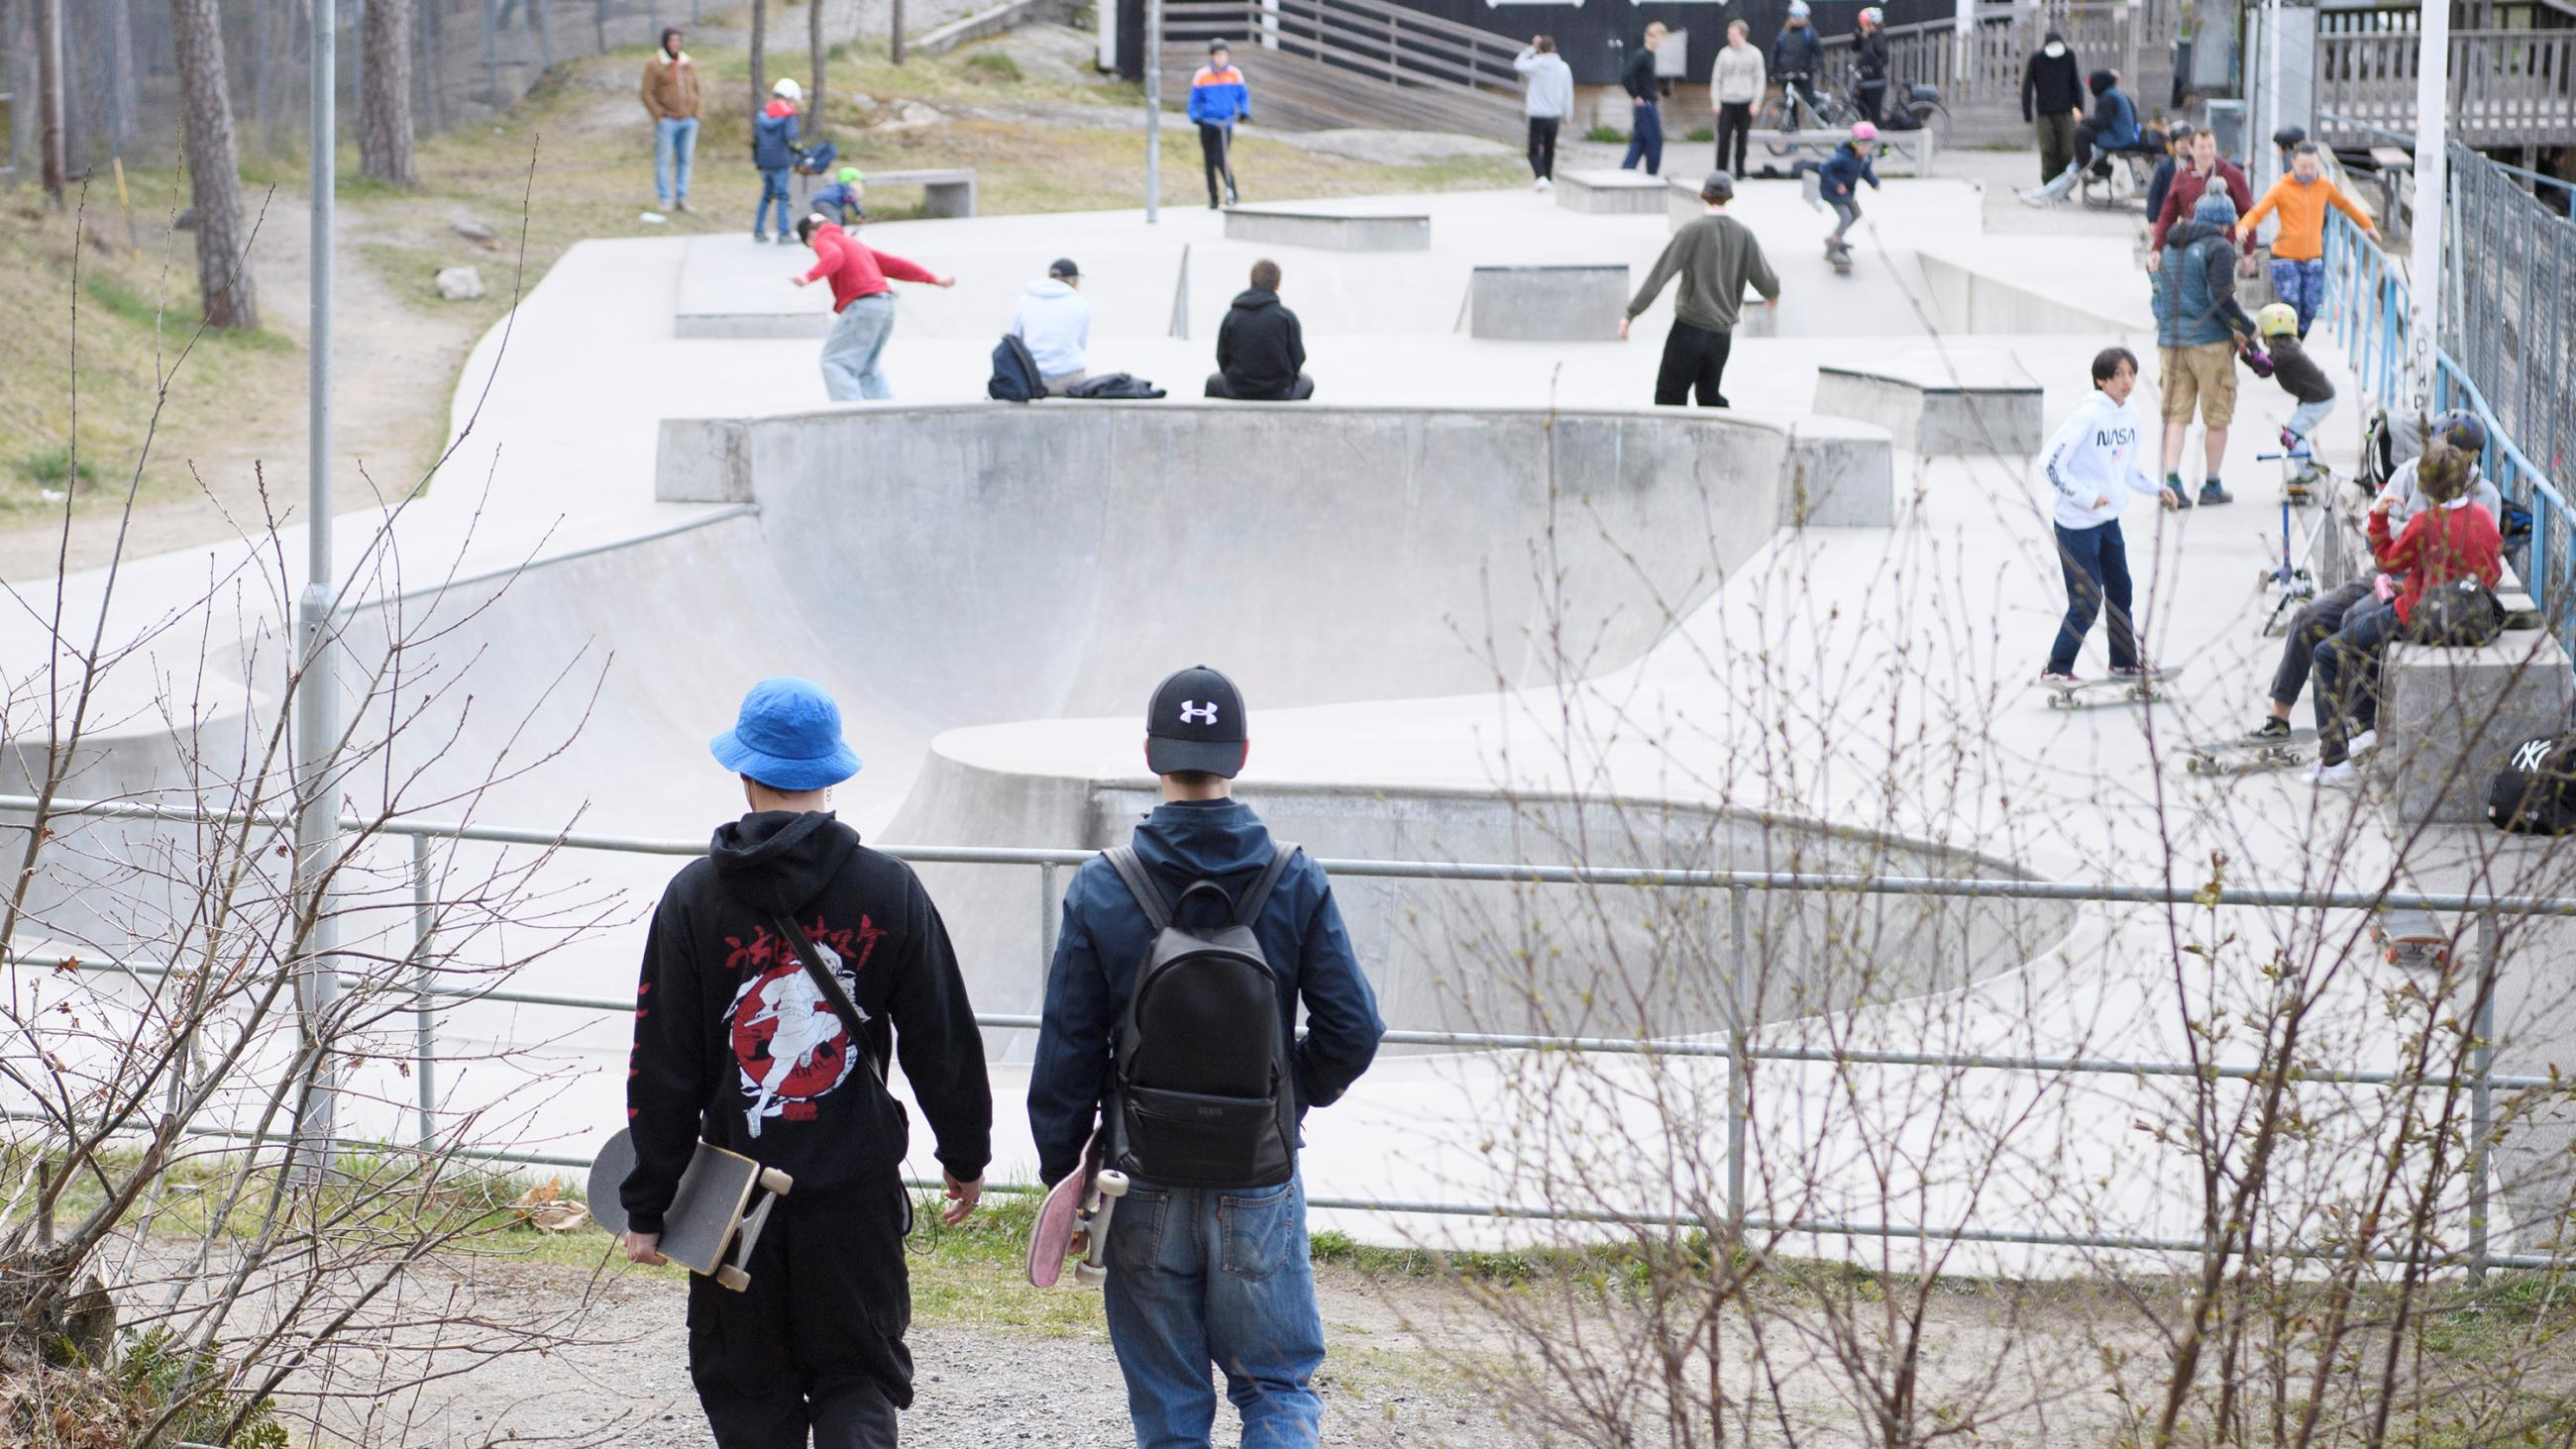 The photo shows a skateboard park that appears to be business as usual.